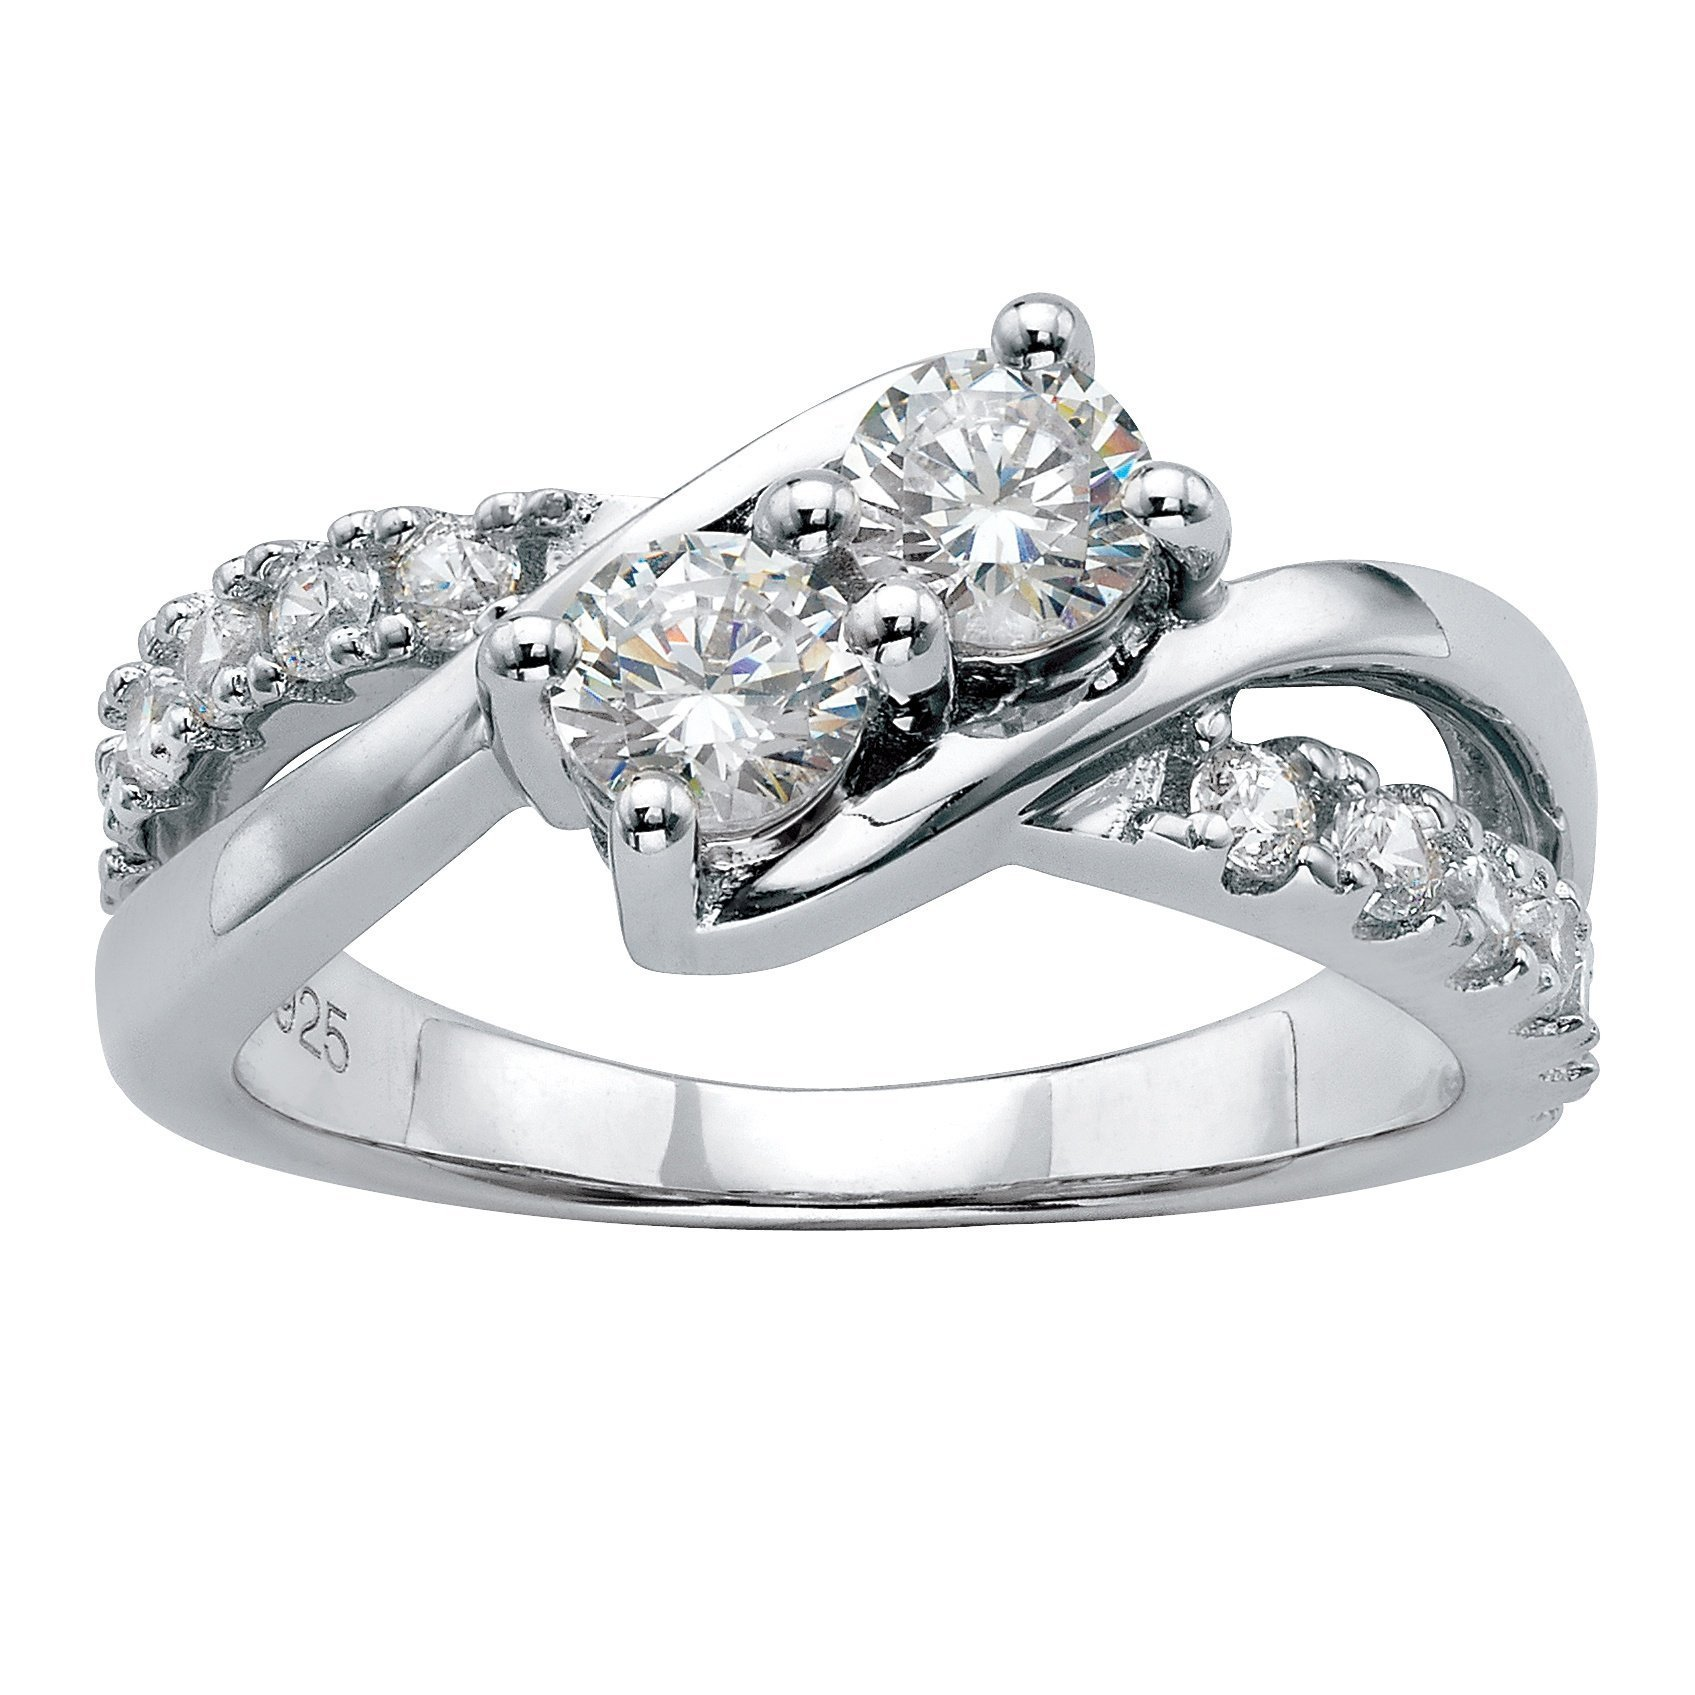 Platinum over Sterling Silver Round Cubic Zirconia Crossover Promise Ring Size 9